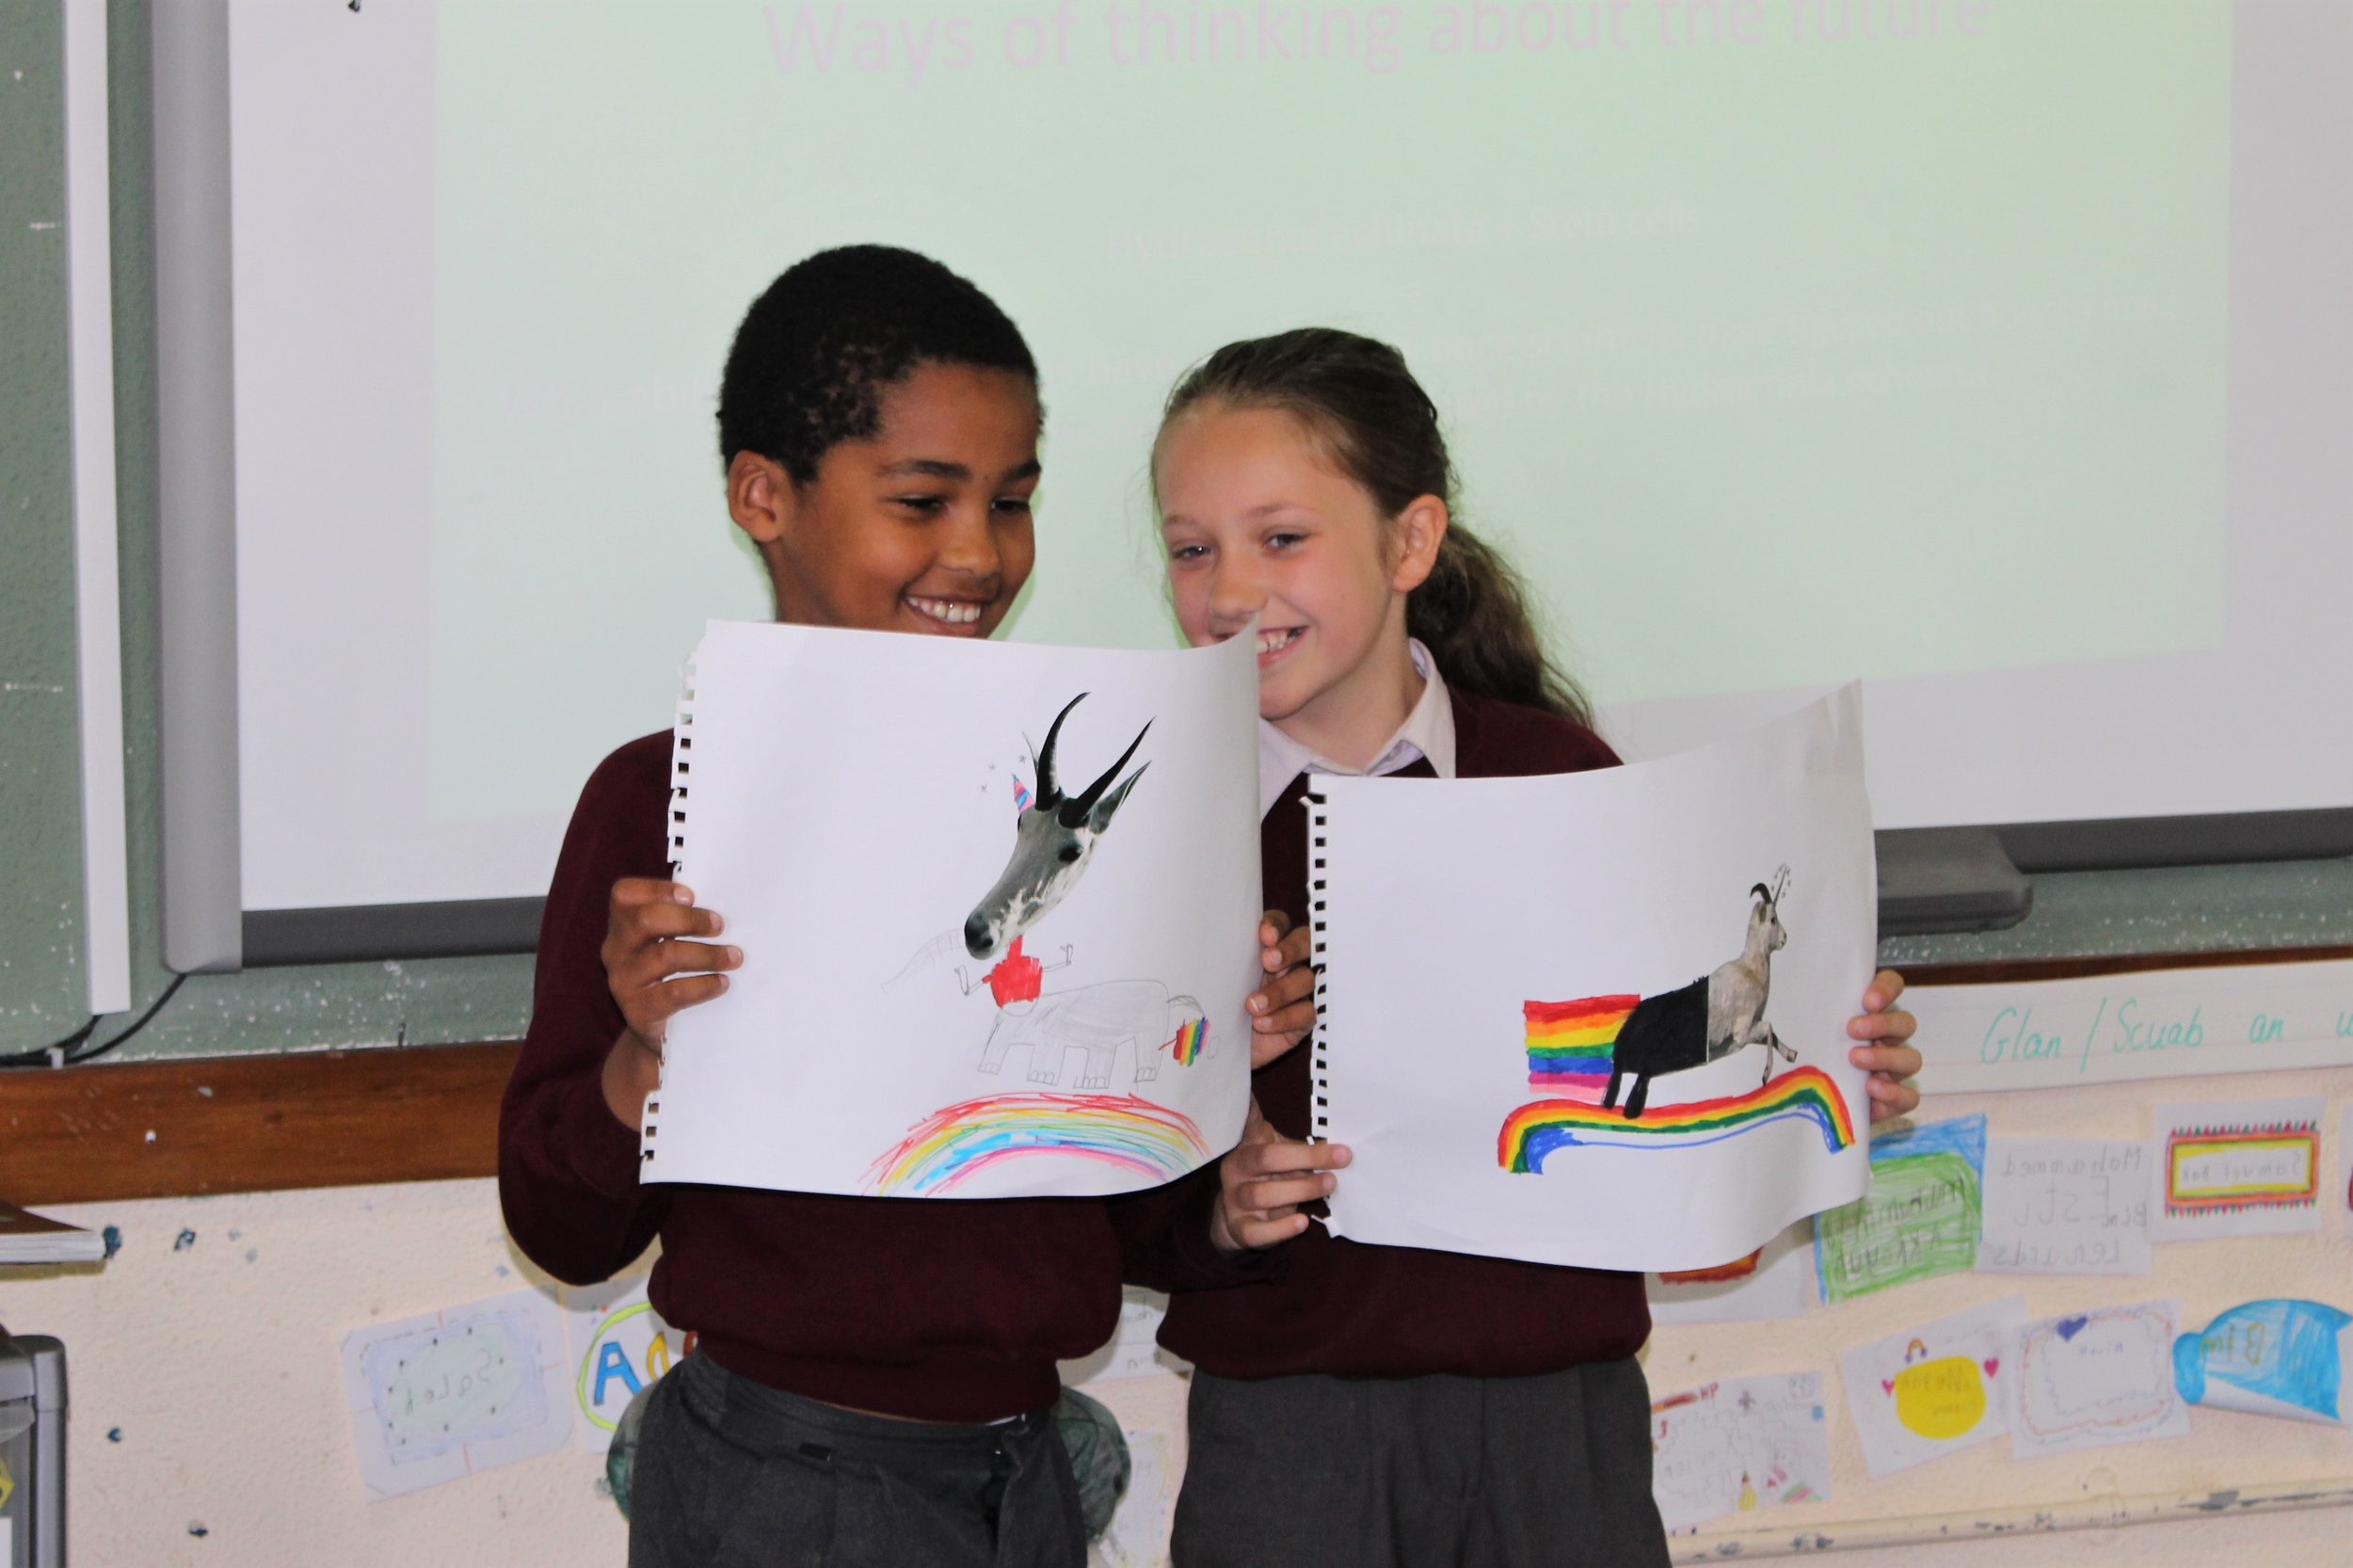 Siobhan gave each student a fragmented section of a cut out of an animal and asked each student to redesign the animal by incorporating elements from other animals and humans.